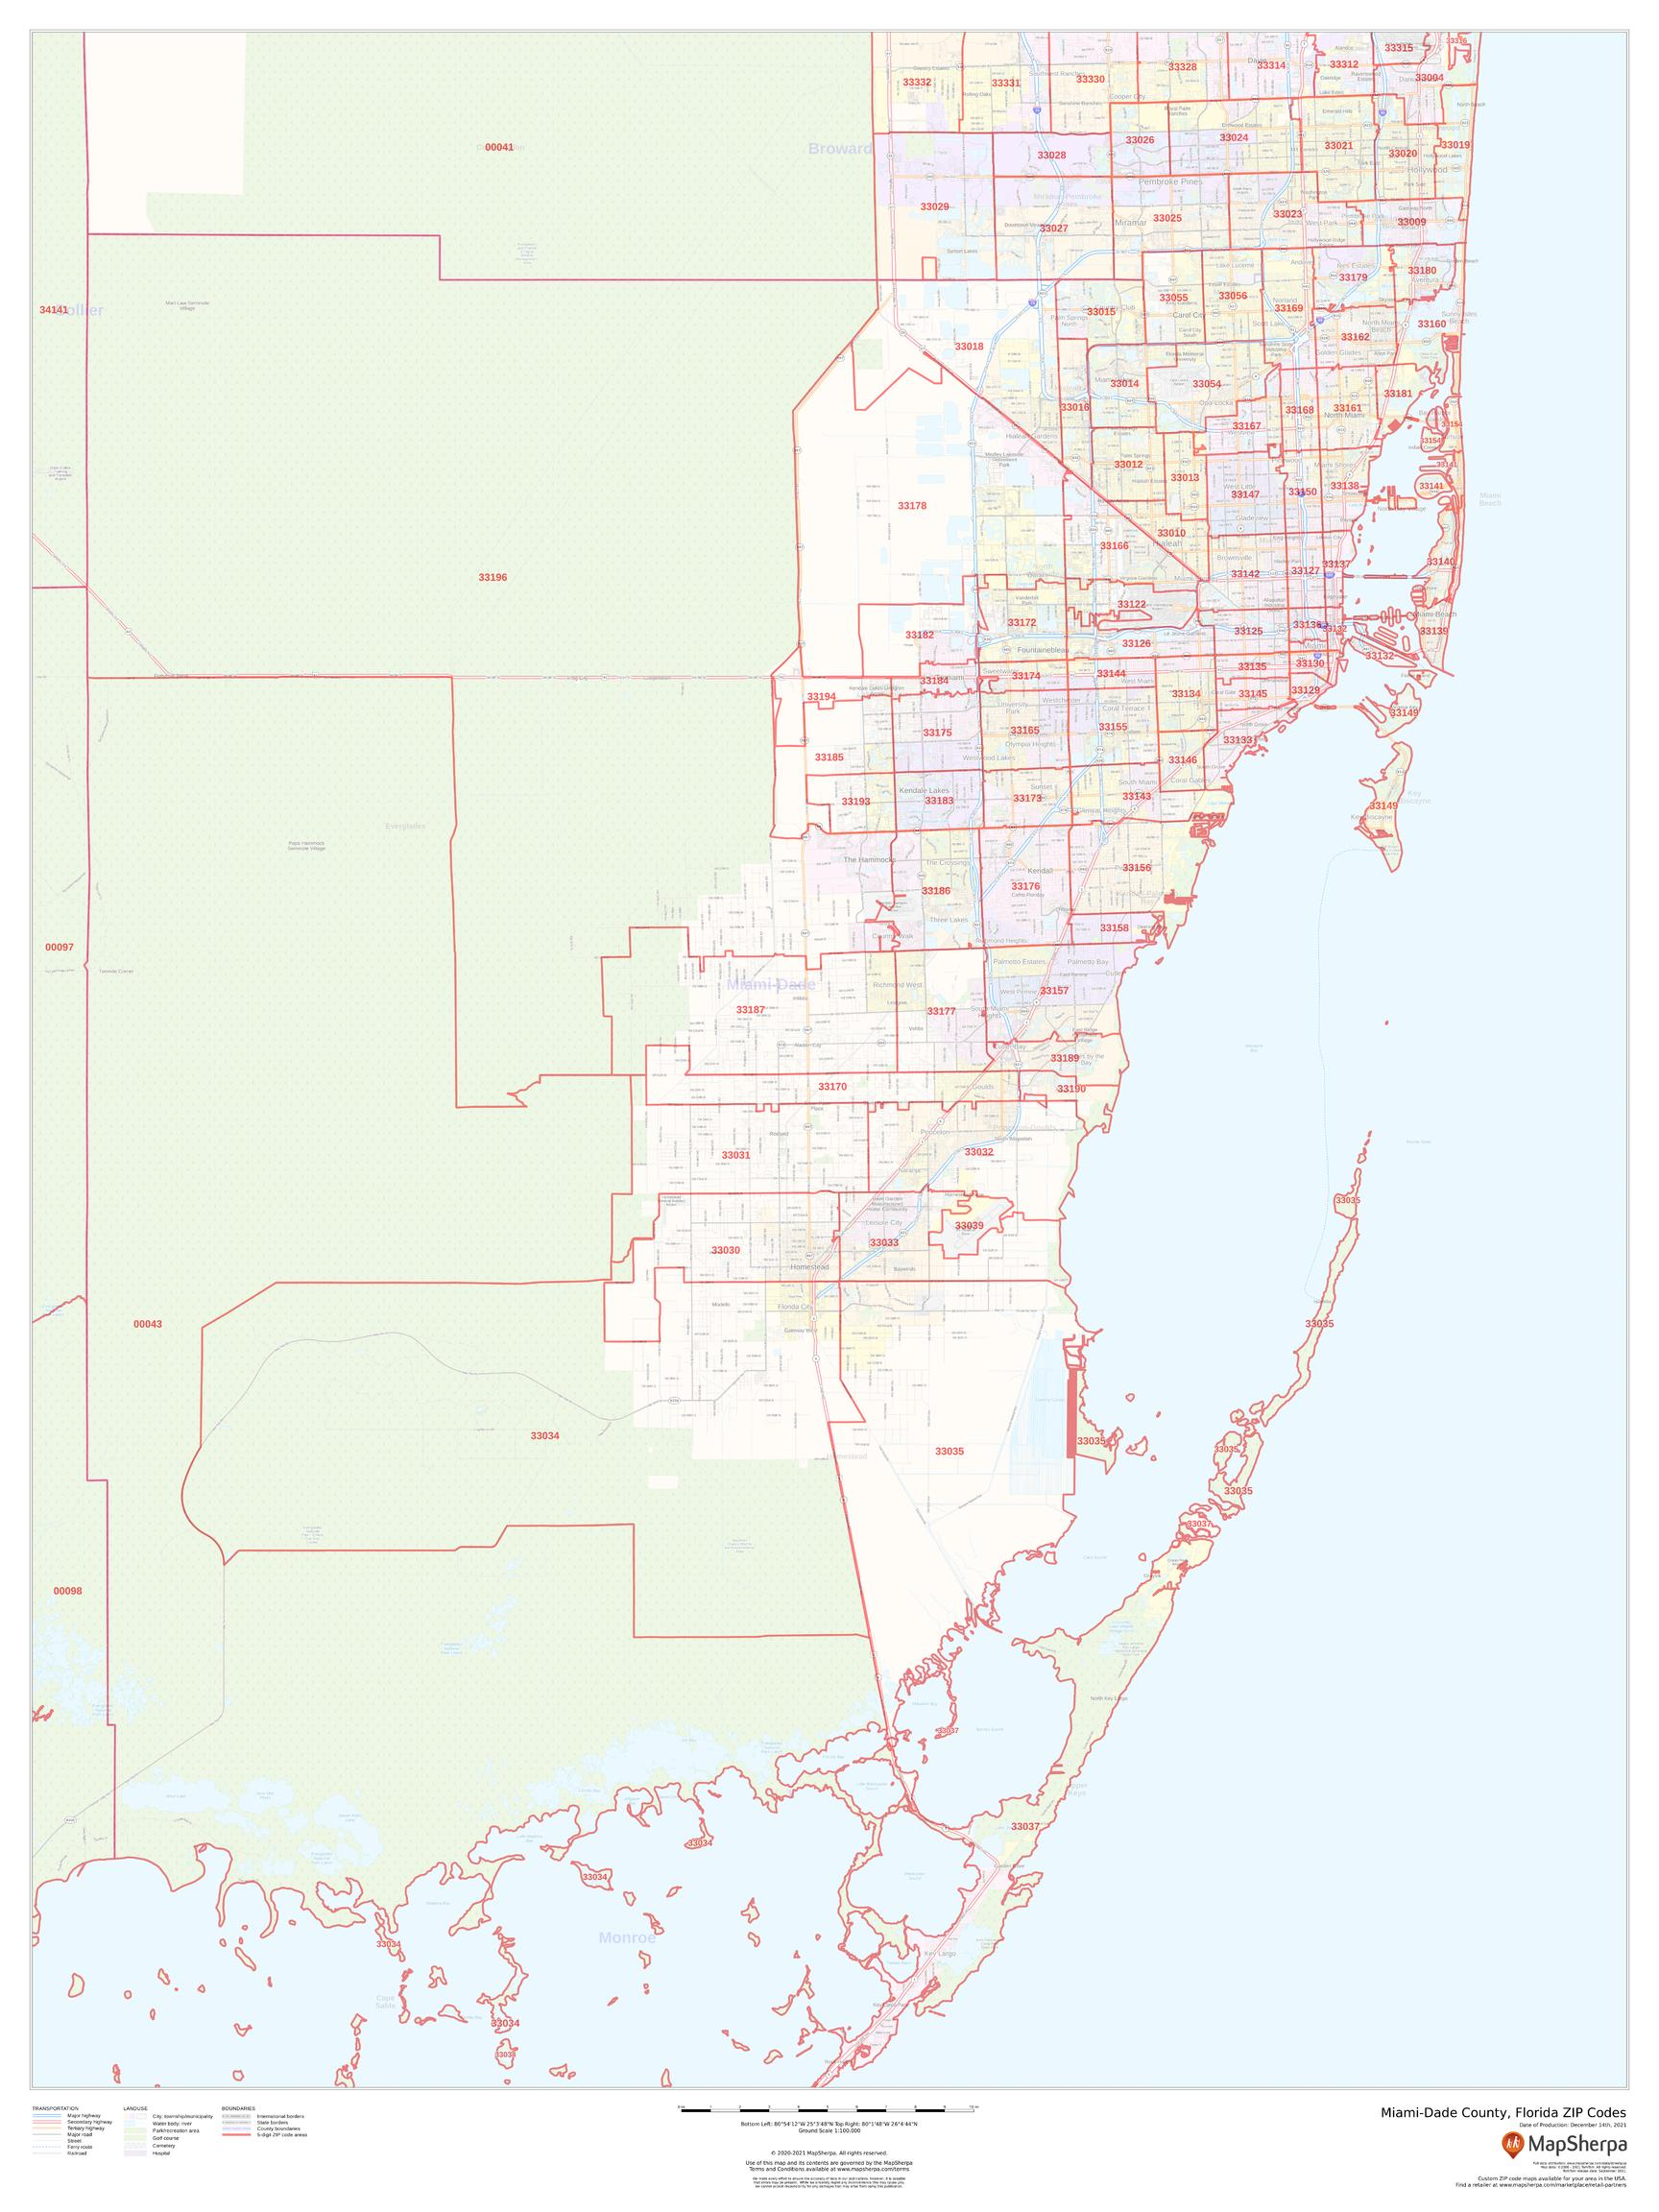 Miami Dade County Zip Code Map Miami Dade County, Florida ZIP Codes